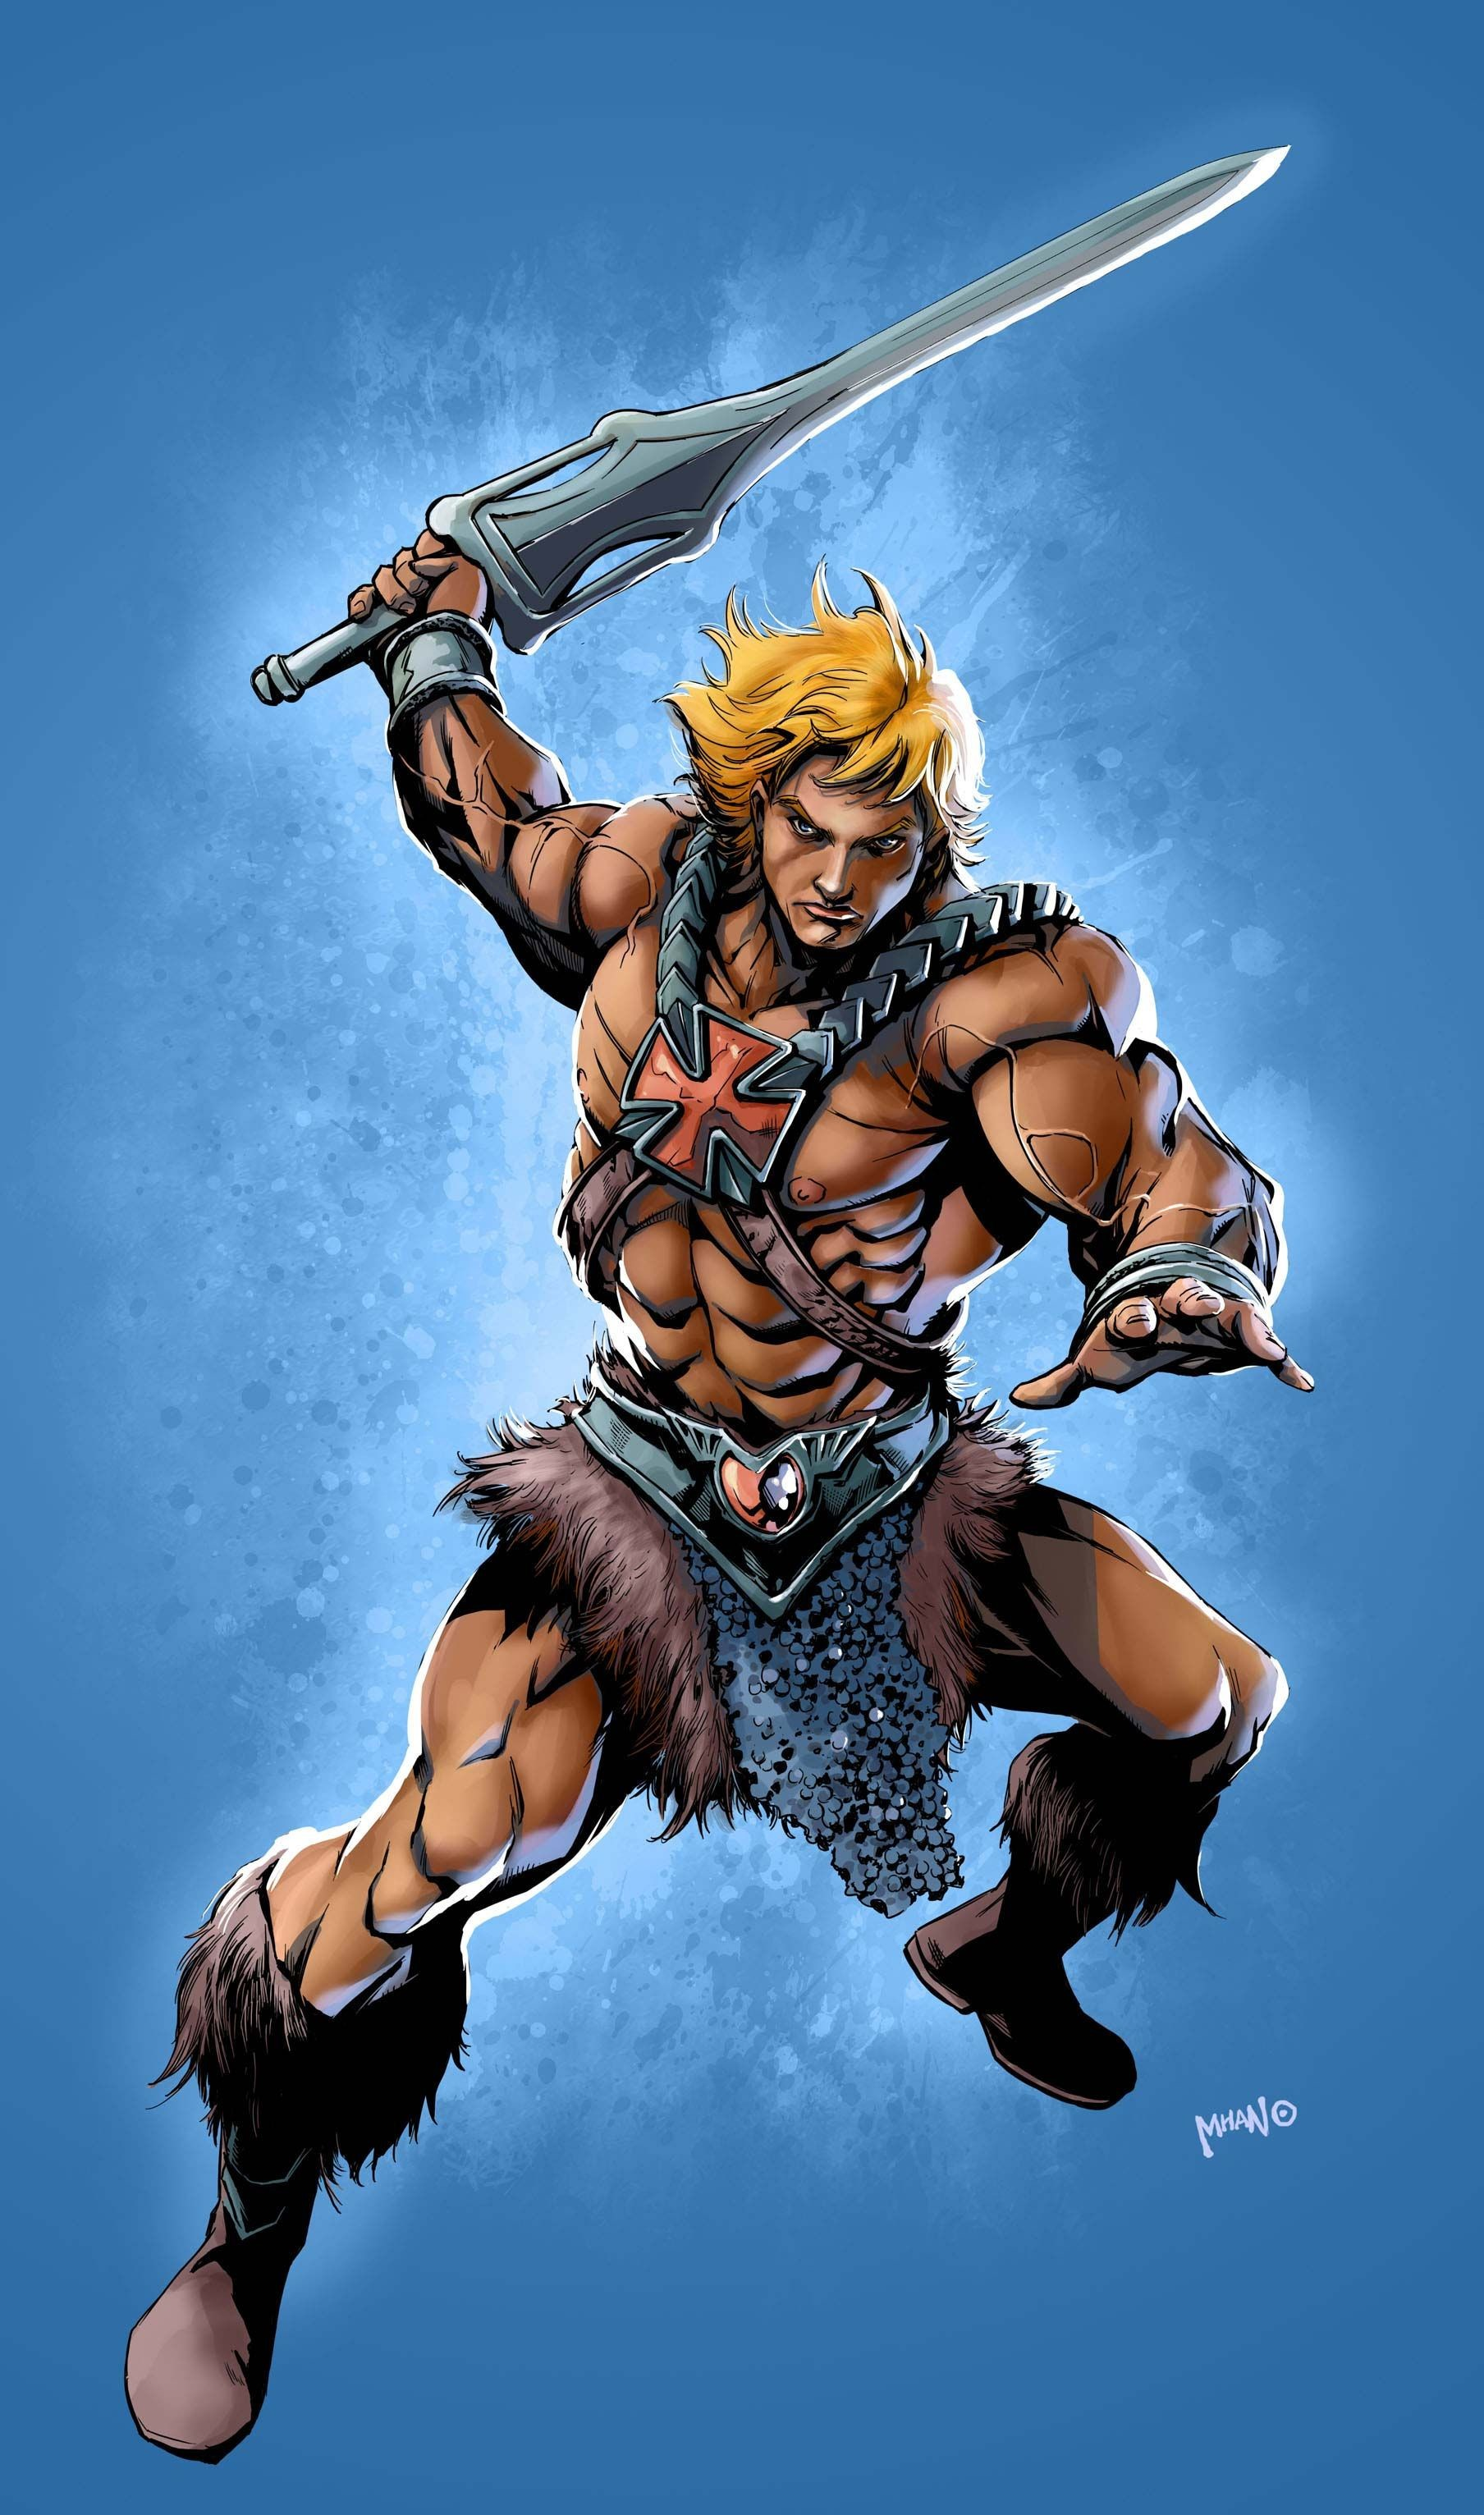 Res: 1808x3064, He-Man - wallpaper HD